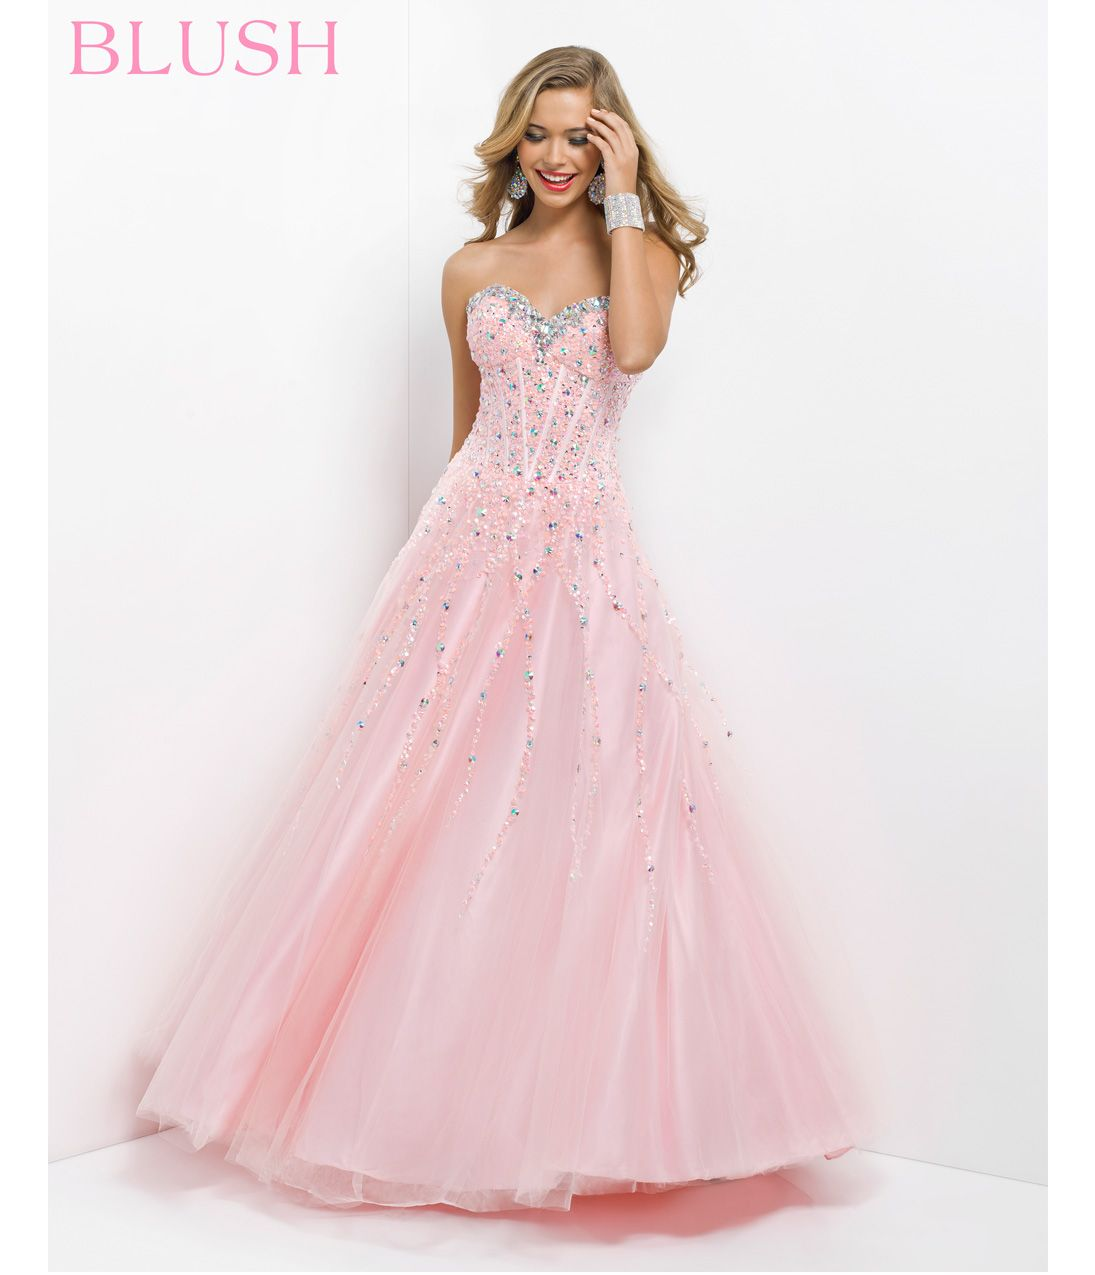 t4rhSkHTBD_Pink_by_Blush_2014_Prom_Dresses ...